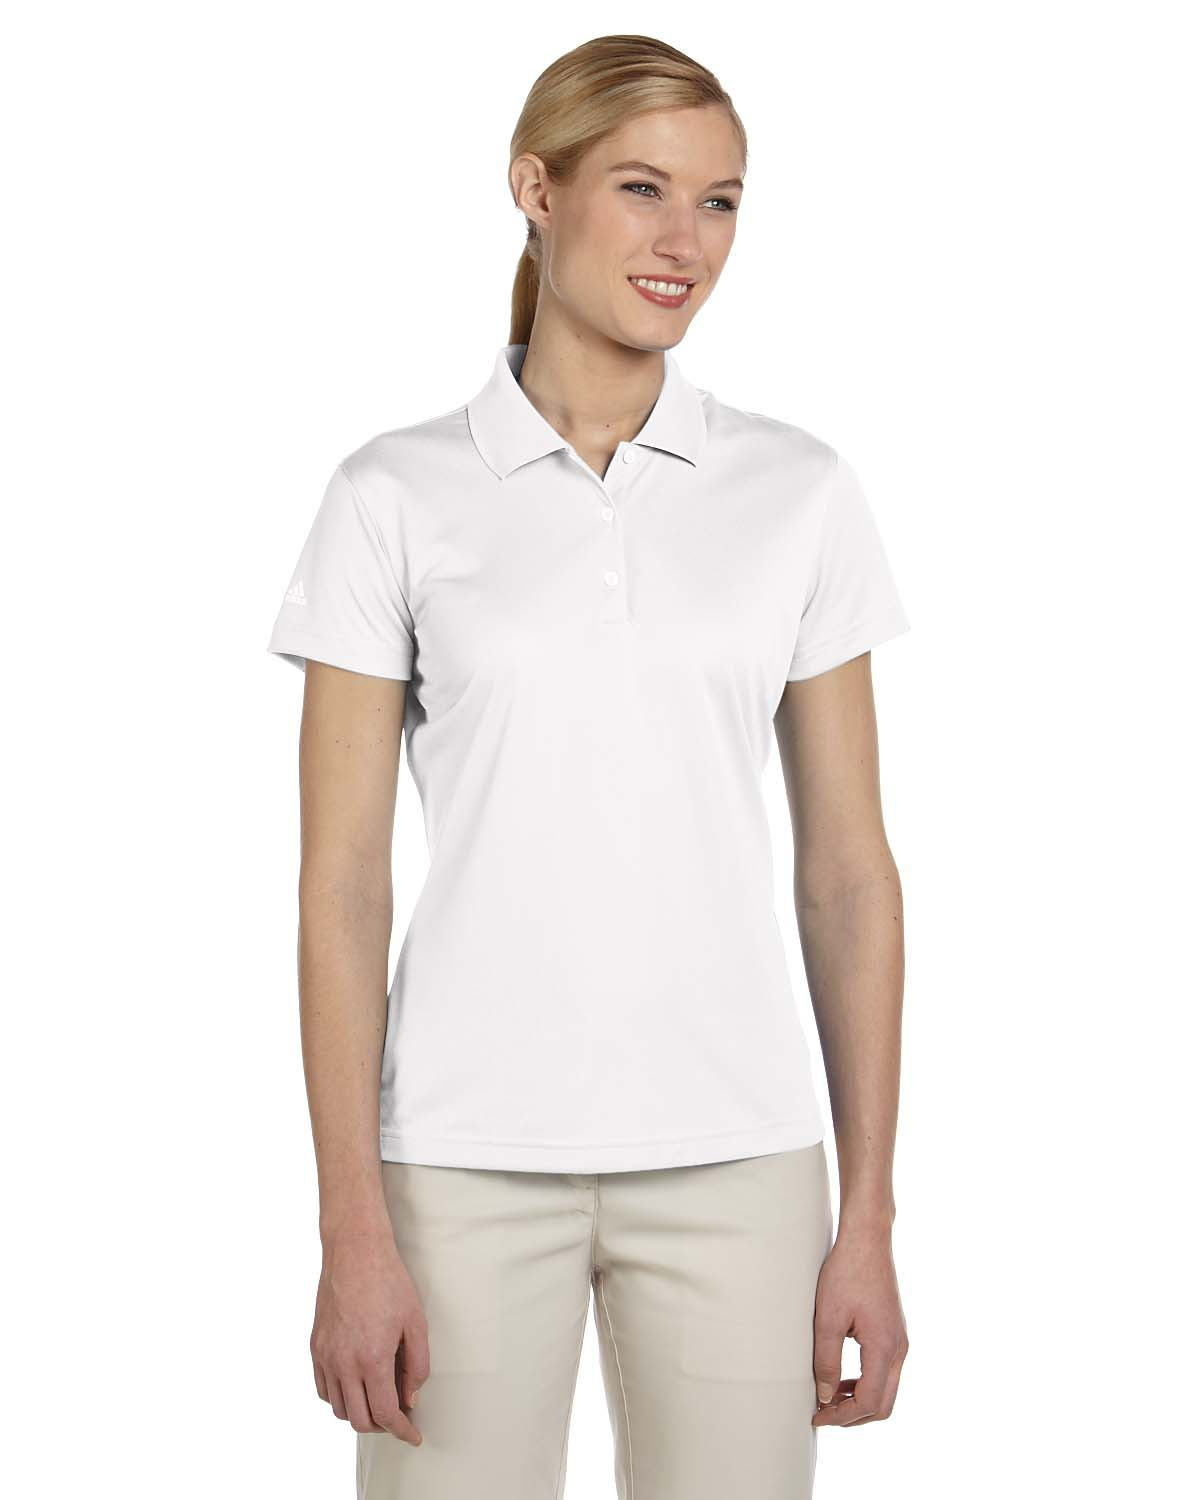 Adidas golf women 39 s climalite basic polo a131 for Basic shirts for women